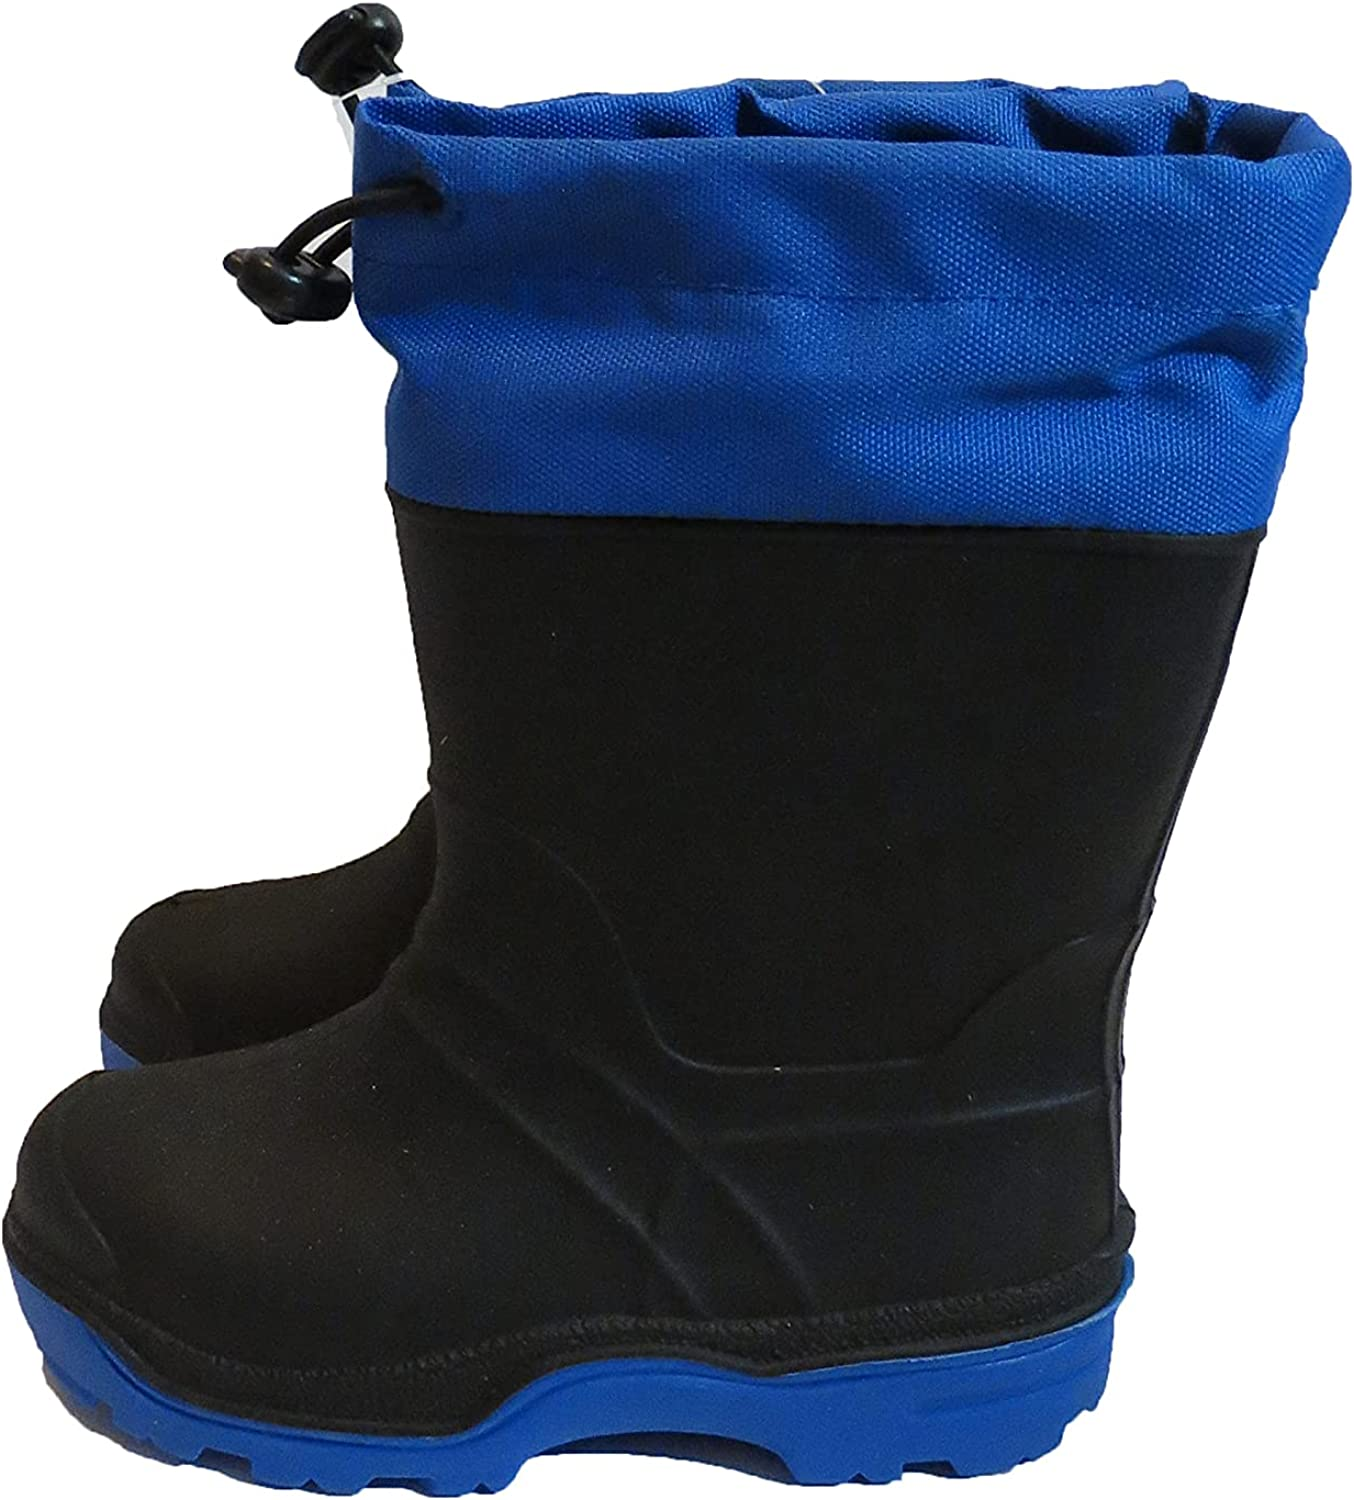 Wonder Nation Canada Made Removable Liners Waterproof Snow Boots Black Blue -22 degrees Little Boys size 9